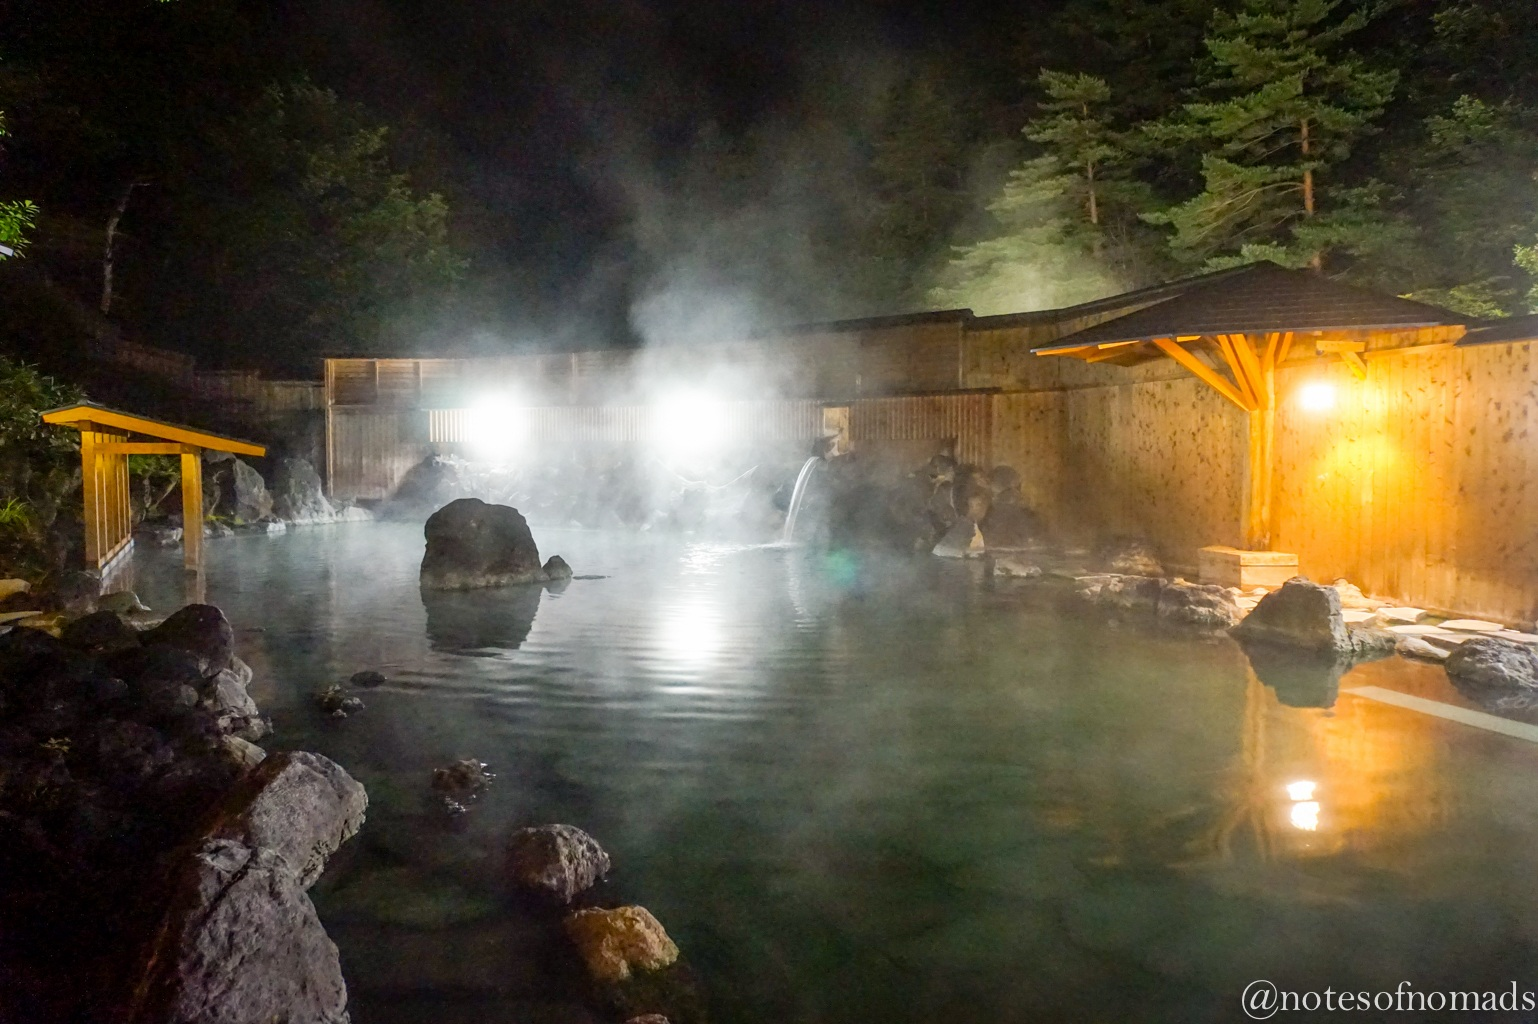 kusatsu girls Find kusatsu onsen stock images in hd and millions of other royalty-free stock  photos, illustrations, and vectors in the shutterstock collection thousands of new .